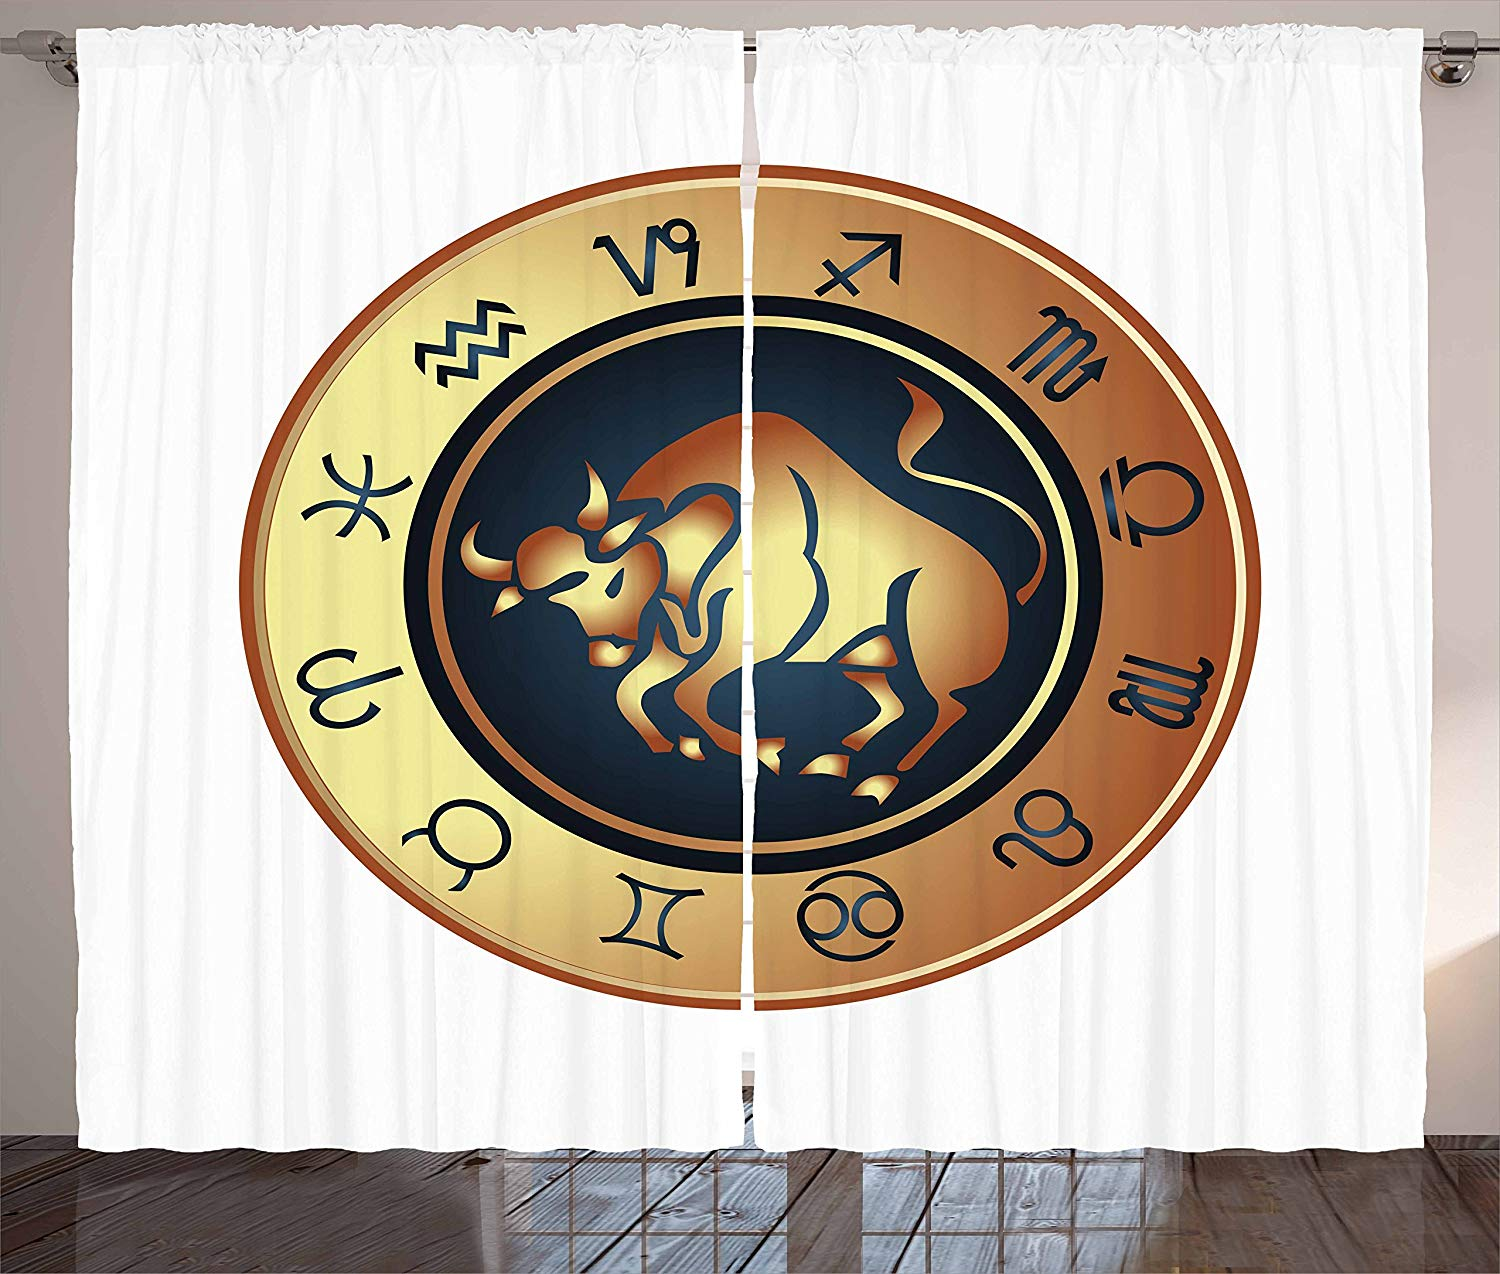 Zodiac Taurus Curtains Circle With Twelve Signs Bull Icon In The Middle Future Cosmos Living Room Bedroom Window Drapes Pale